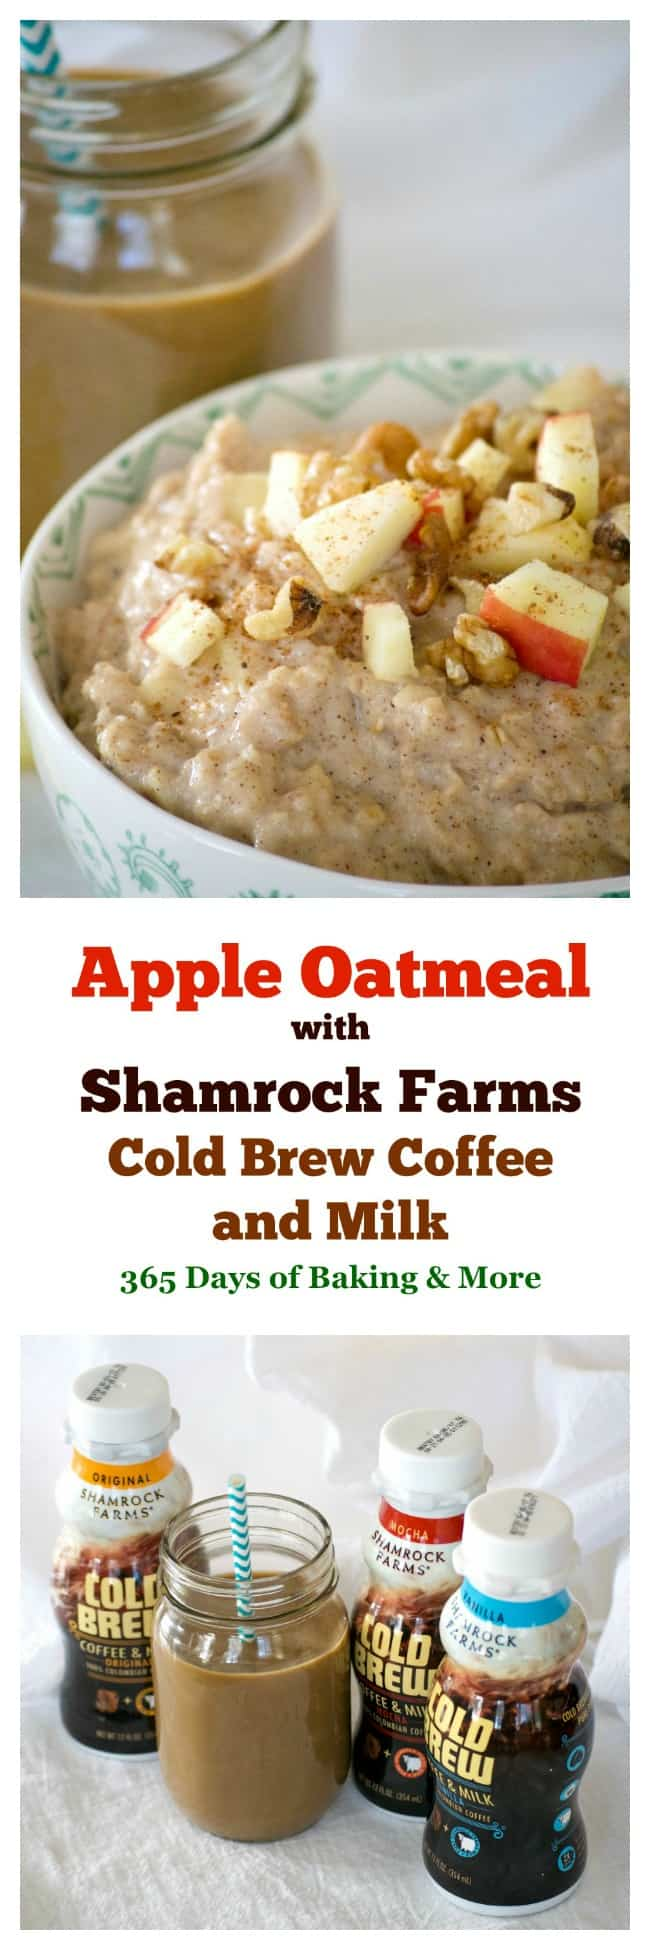 Enjoy one of three NEW flavors of Shamrock Farms Cold Brew Coffee and Milk at breakfast or any time of day. It pairs perfectly with a warm bowl of Apple Oatmeal in the morning!